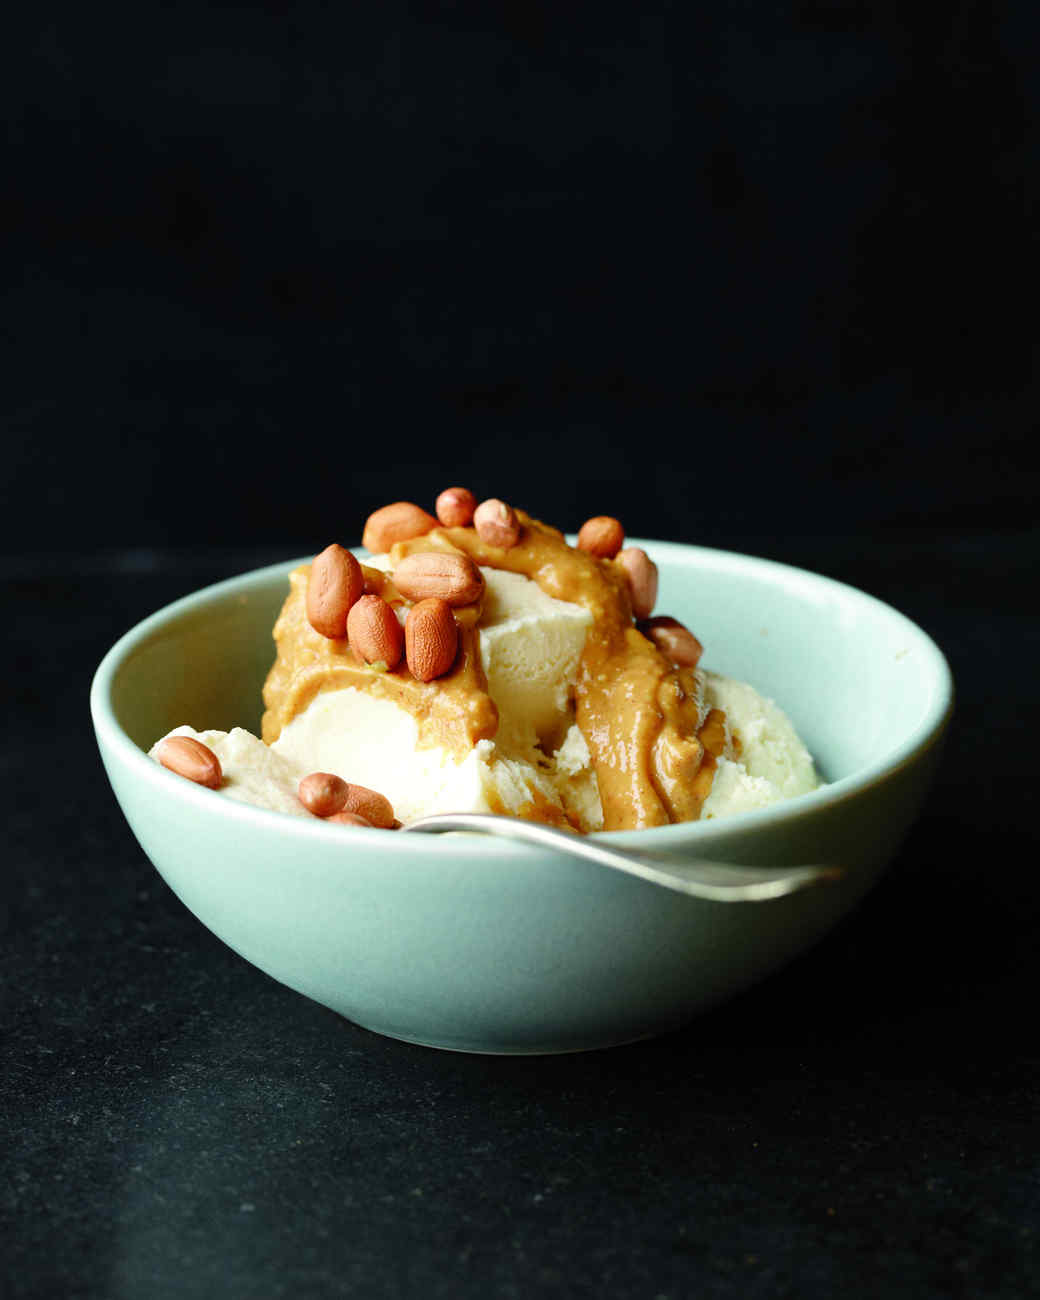 softened-ice-cream-with-peanut-butter-md108188.jpg